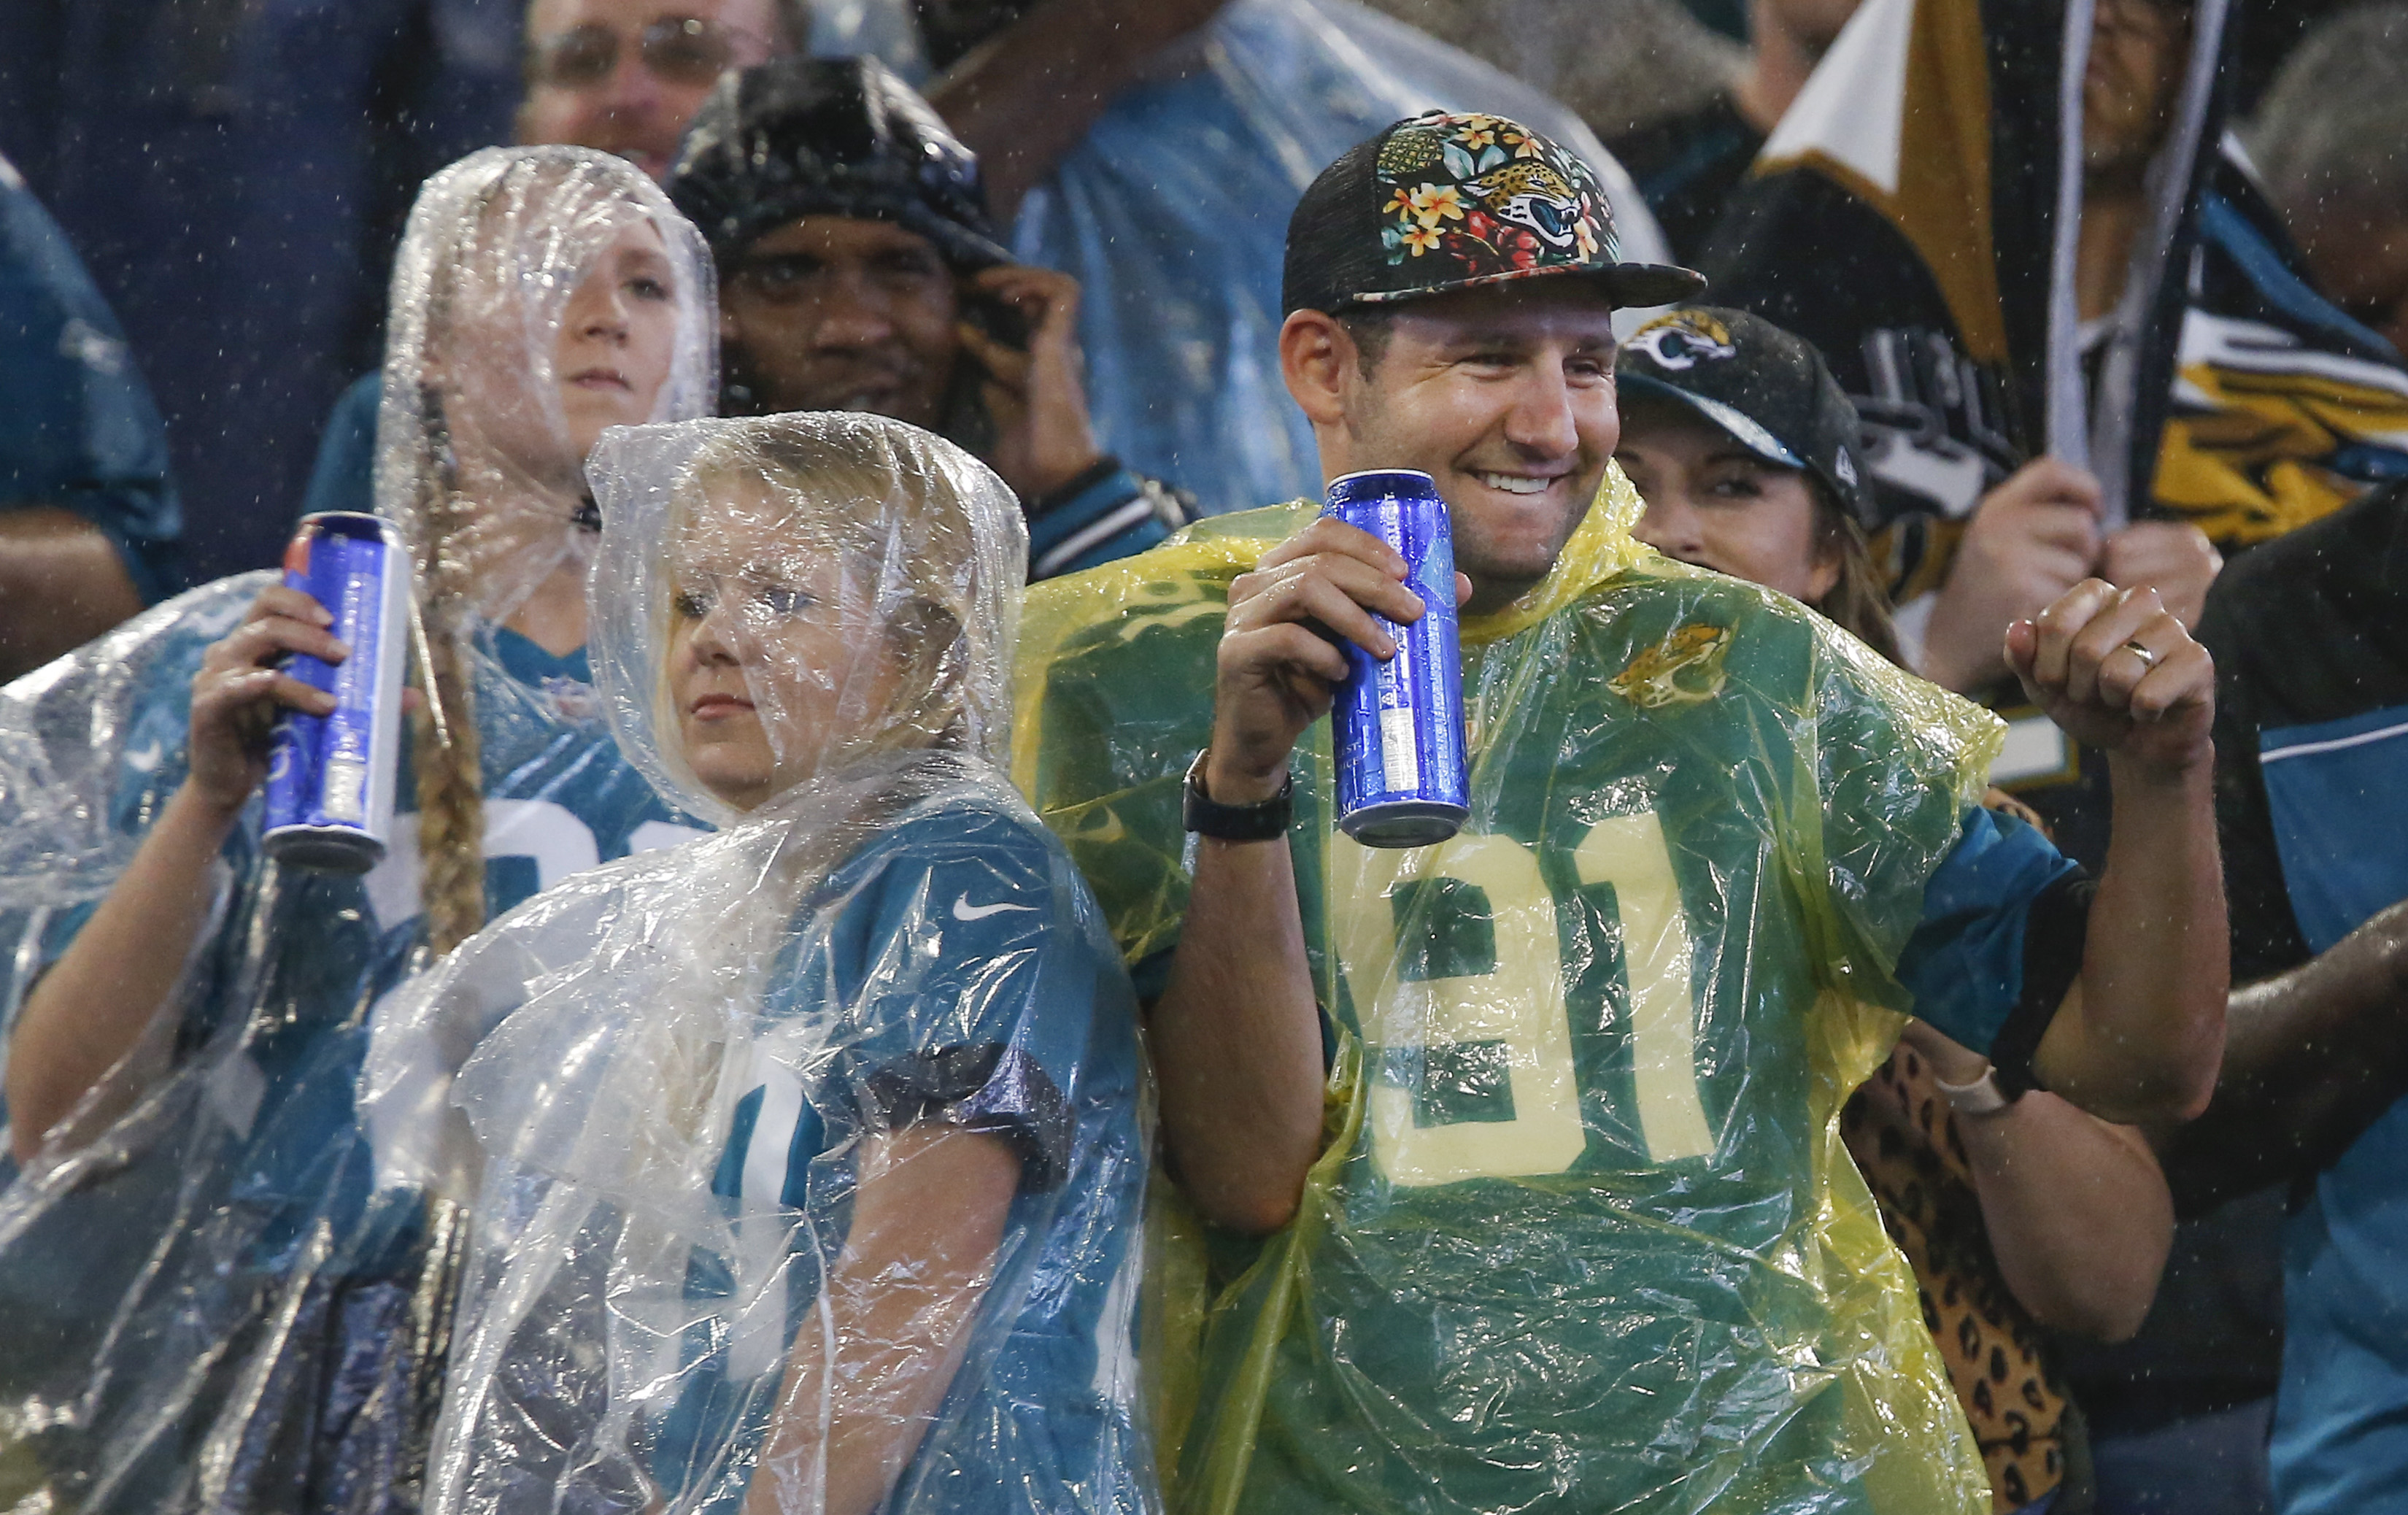 Sep 19, 2019; Jacksonville, FL, USA; Despite the rain Jacksonville Jaguars fans cheer during the second quarter against the Tennessee Titans at TIAA Bank Field.